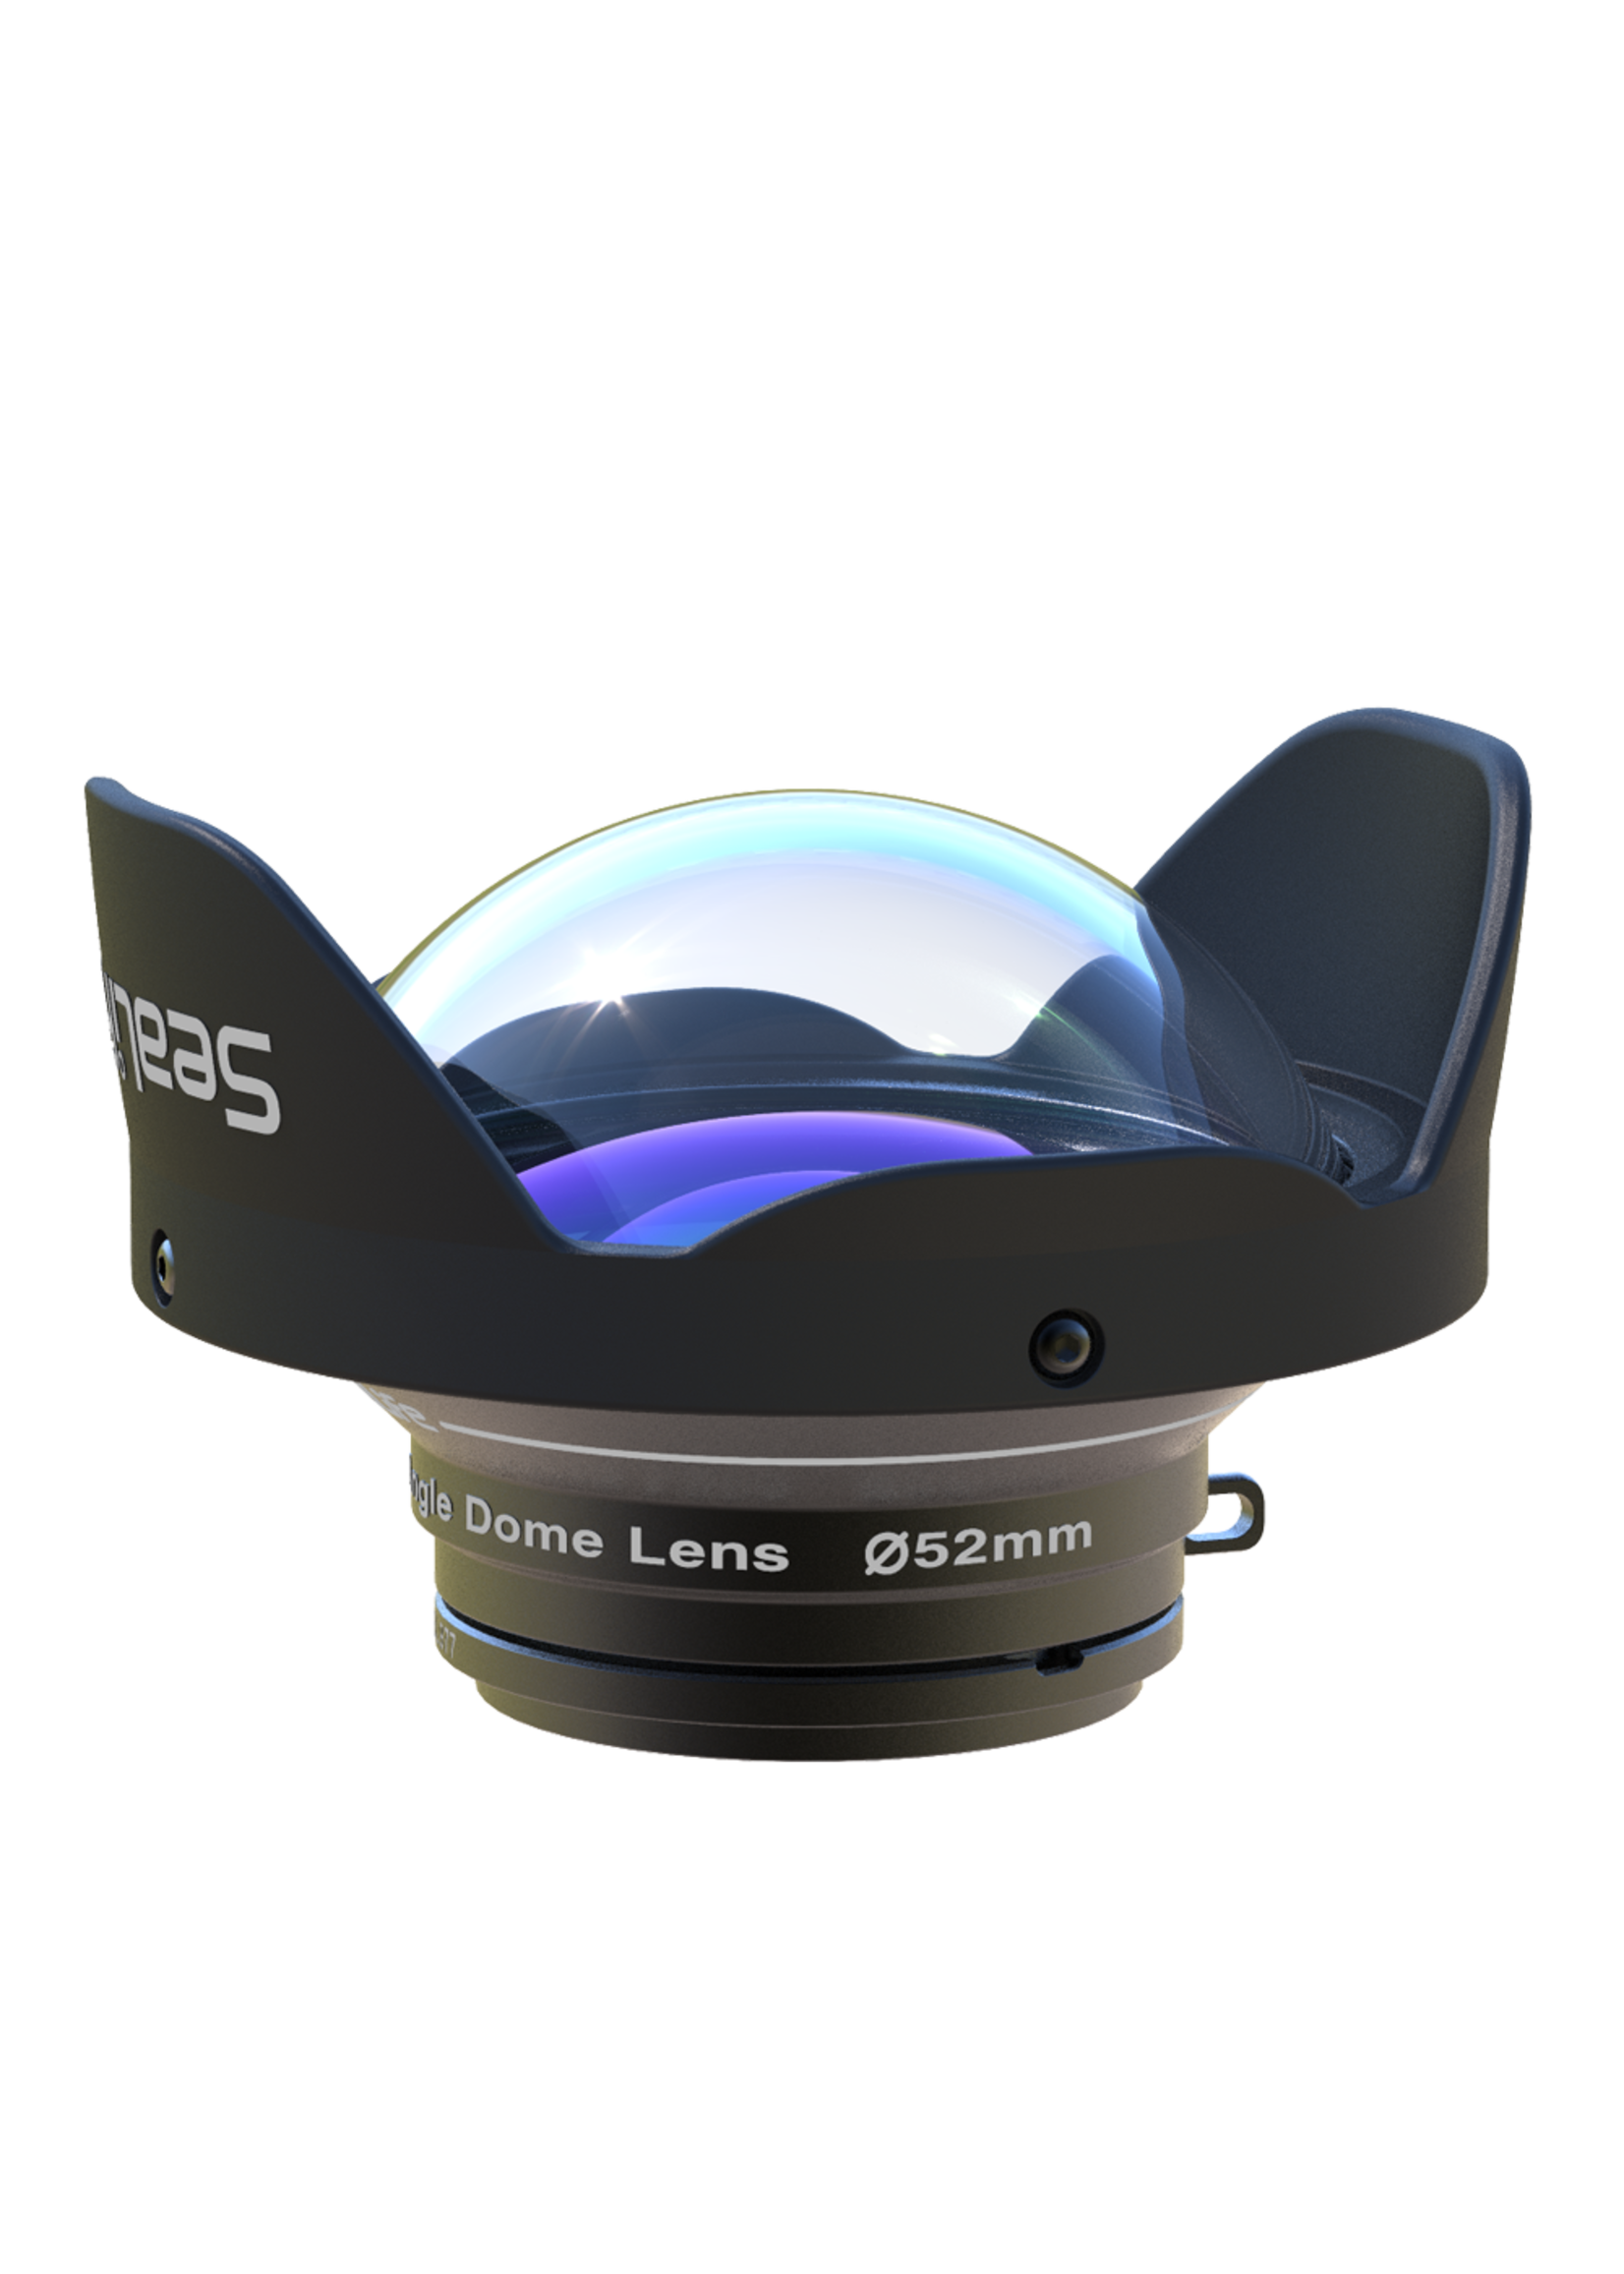 Sealife Sealife 0.5x Wide Angle Dome Lens for DC-Series Cameras